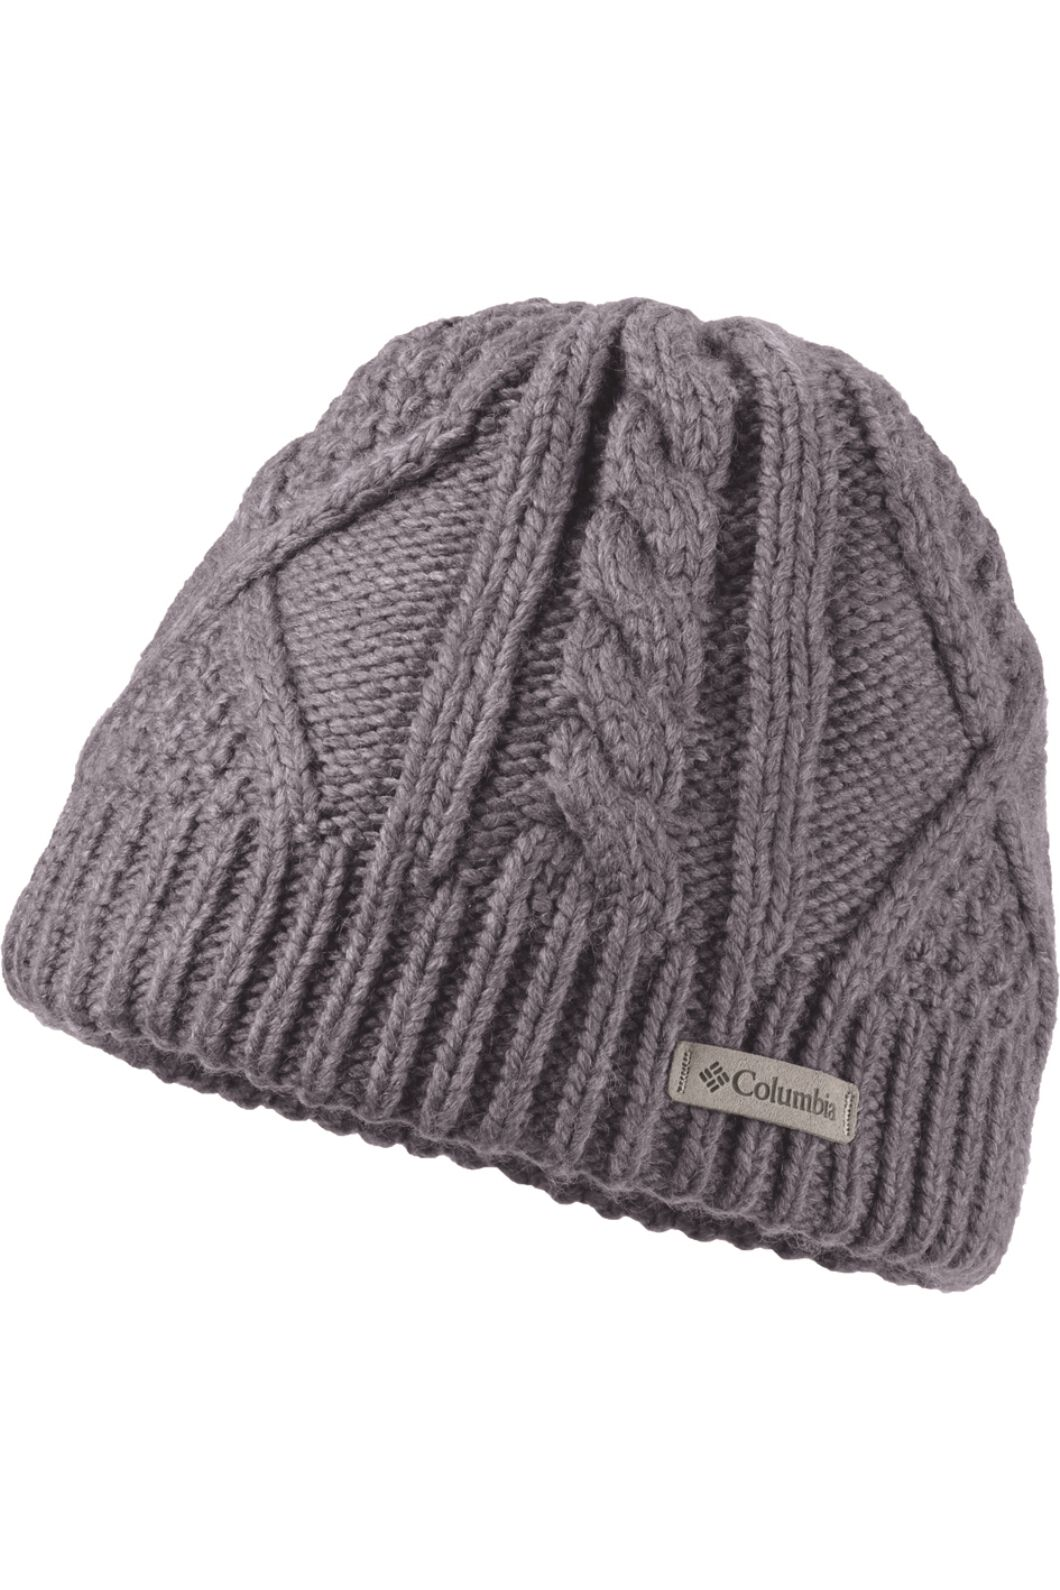 Columbia Women's Cabled Cutie Beanie Astral One Size Fits Most, Astral, hi-res